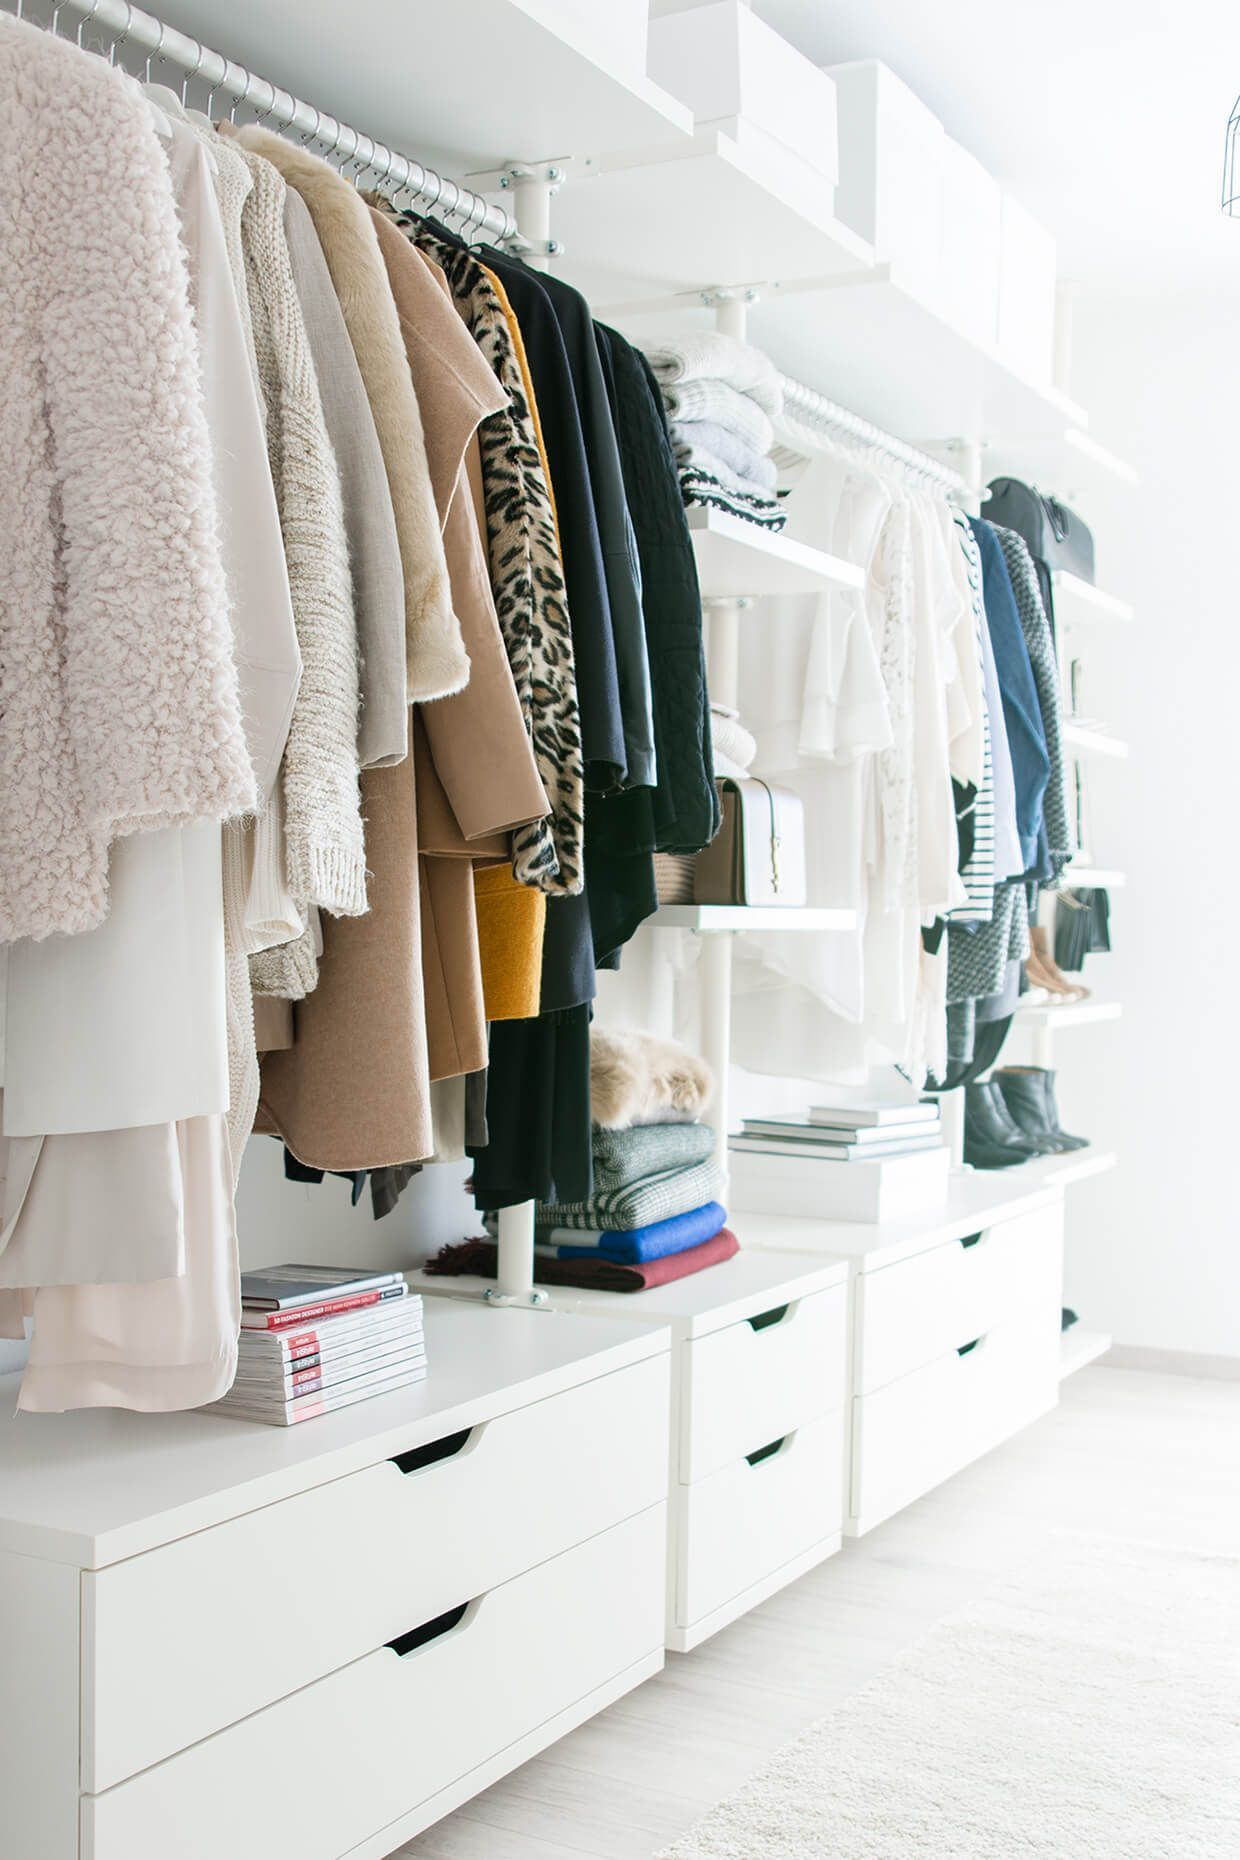 Check Out This Amazing Article Showcasing The List Of Best Free Closet Design Software Options To Create Both